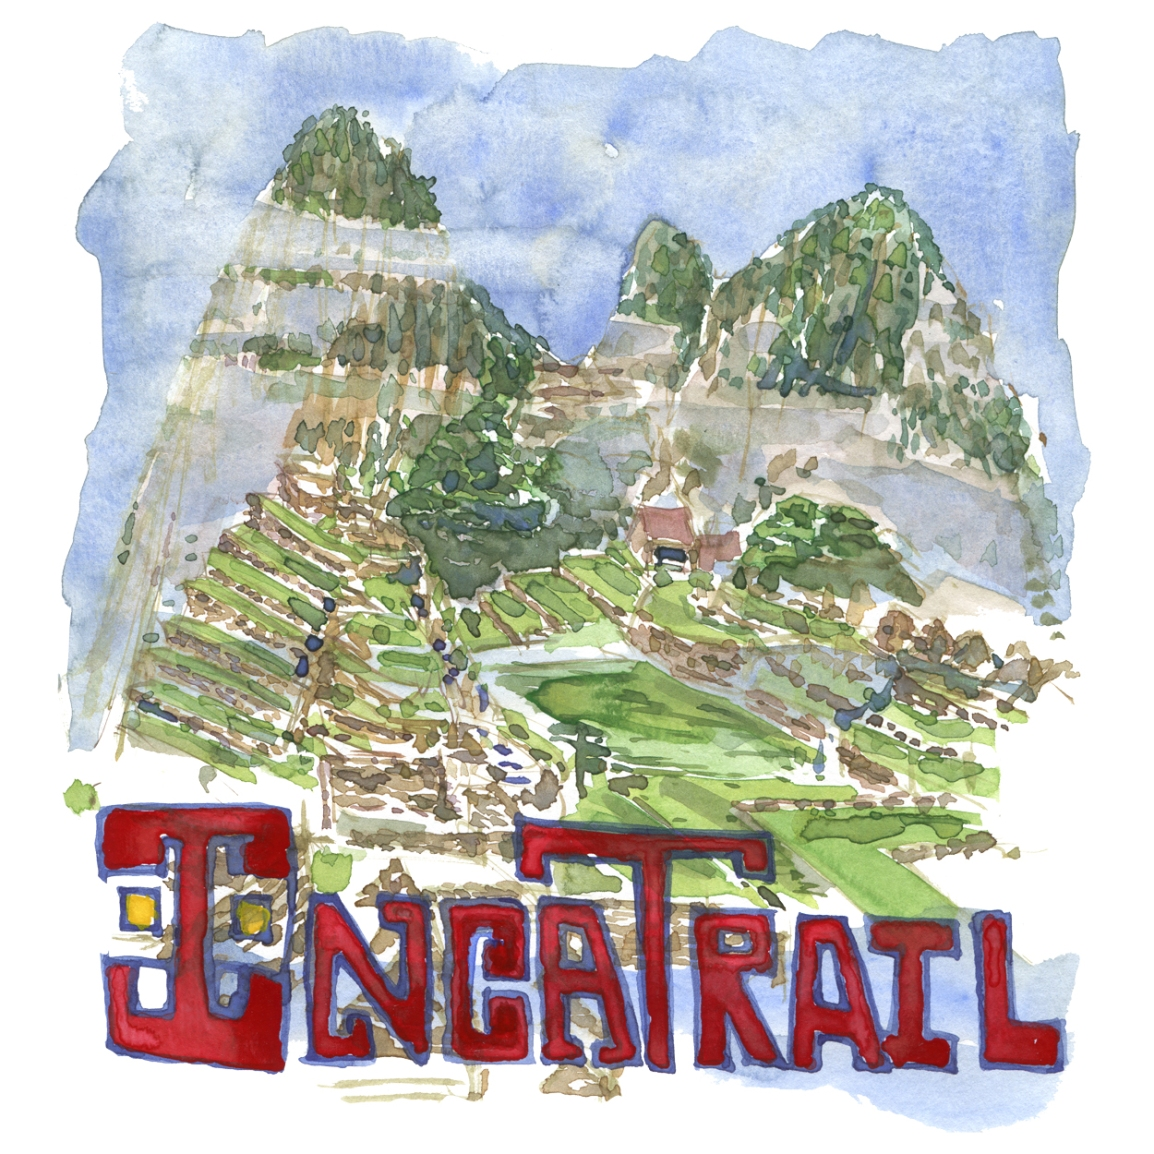 Drawing of the Macchu Picchu Inca citadel with the text Inca Trail written in red - Watercolor by Frits Ahlefeldt